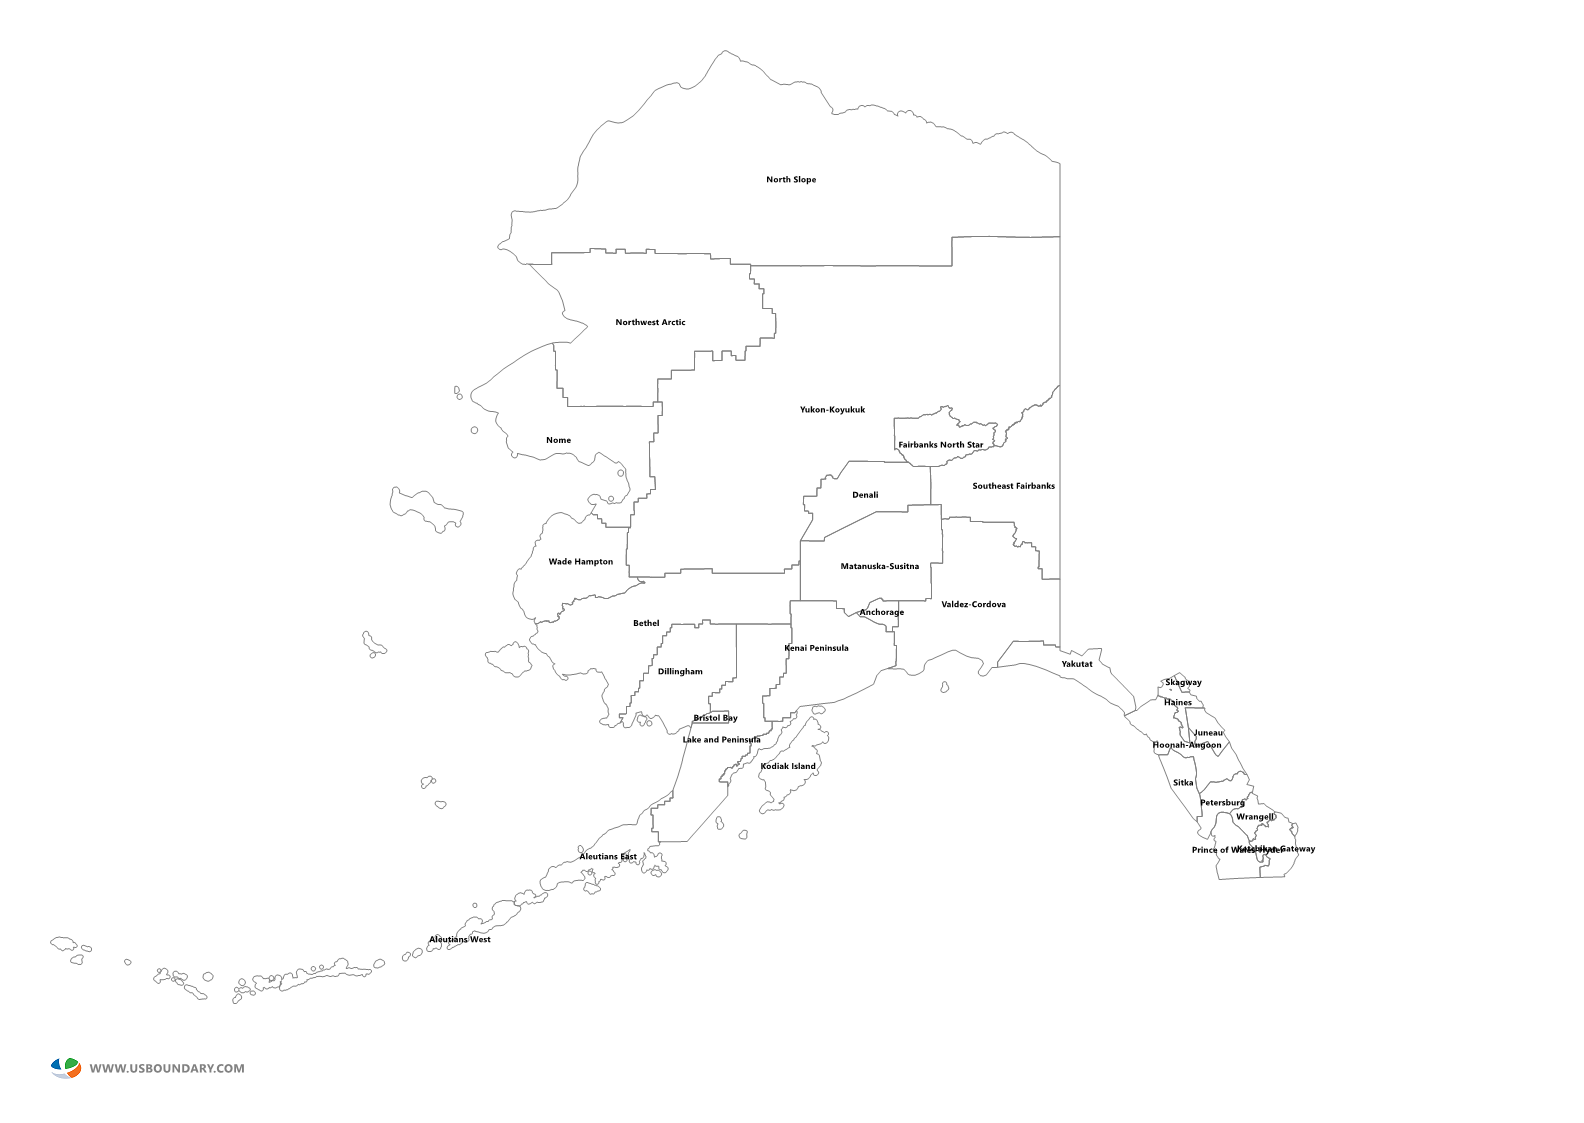 Alaska dillingham county - Alaska Counties Outline Map